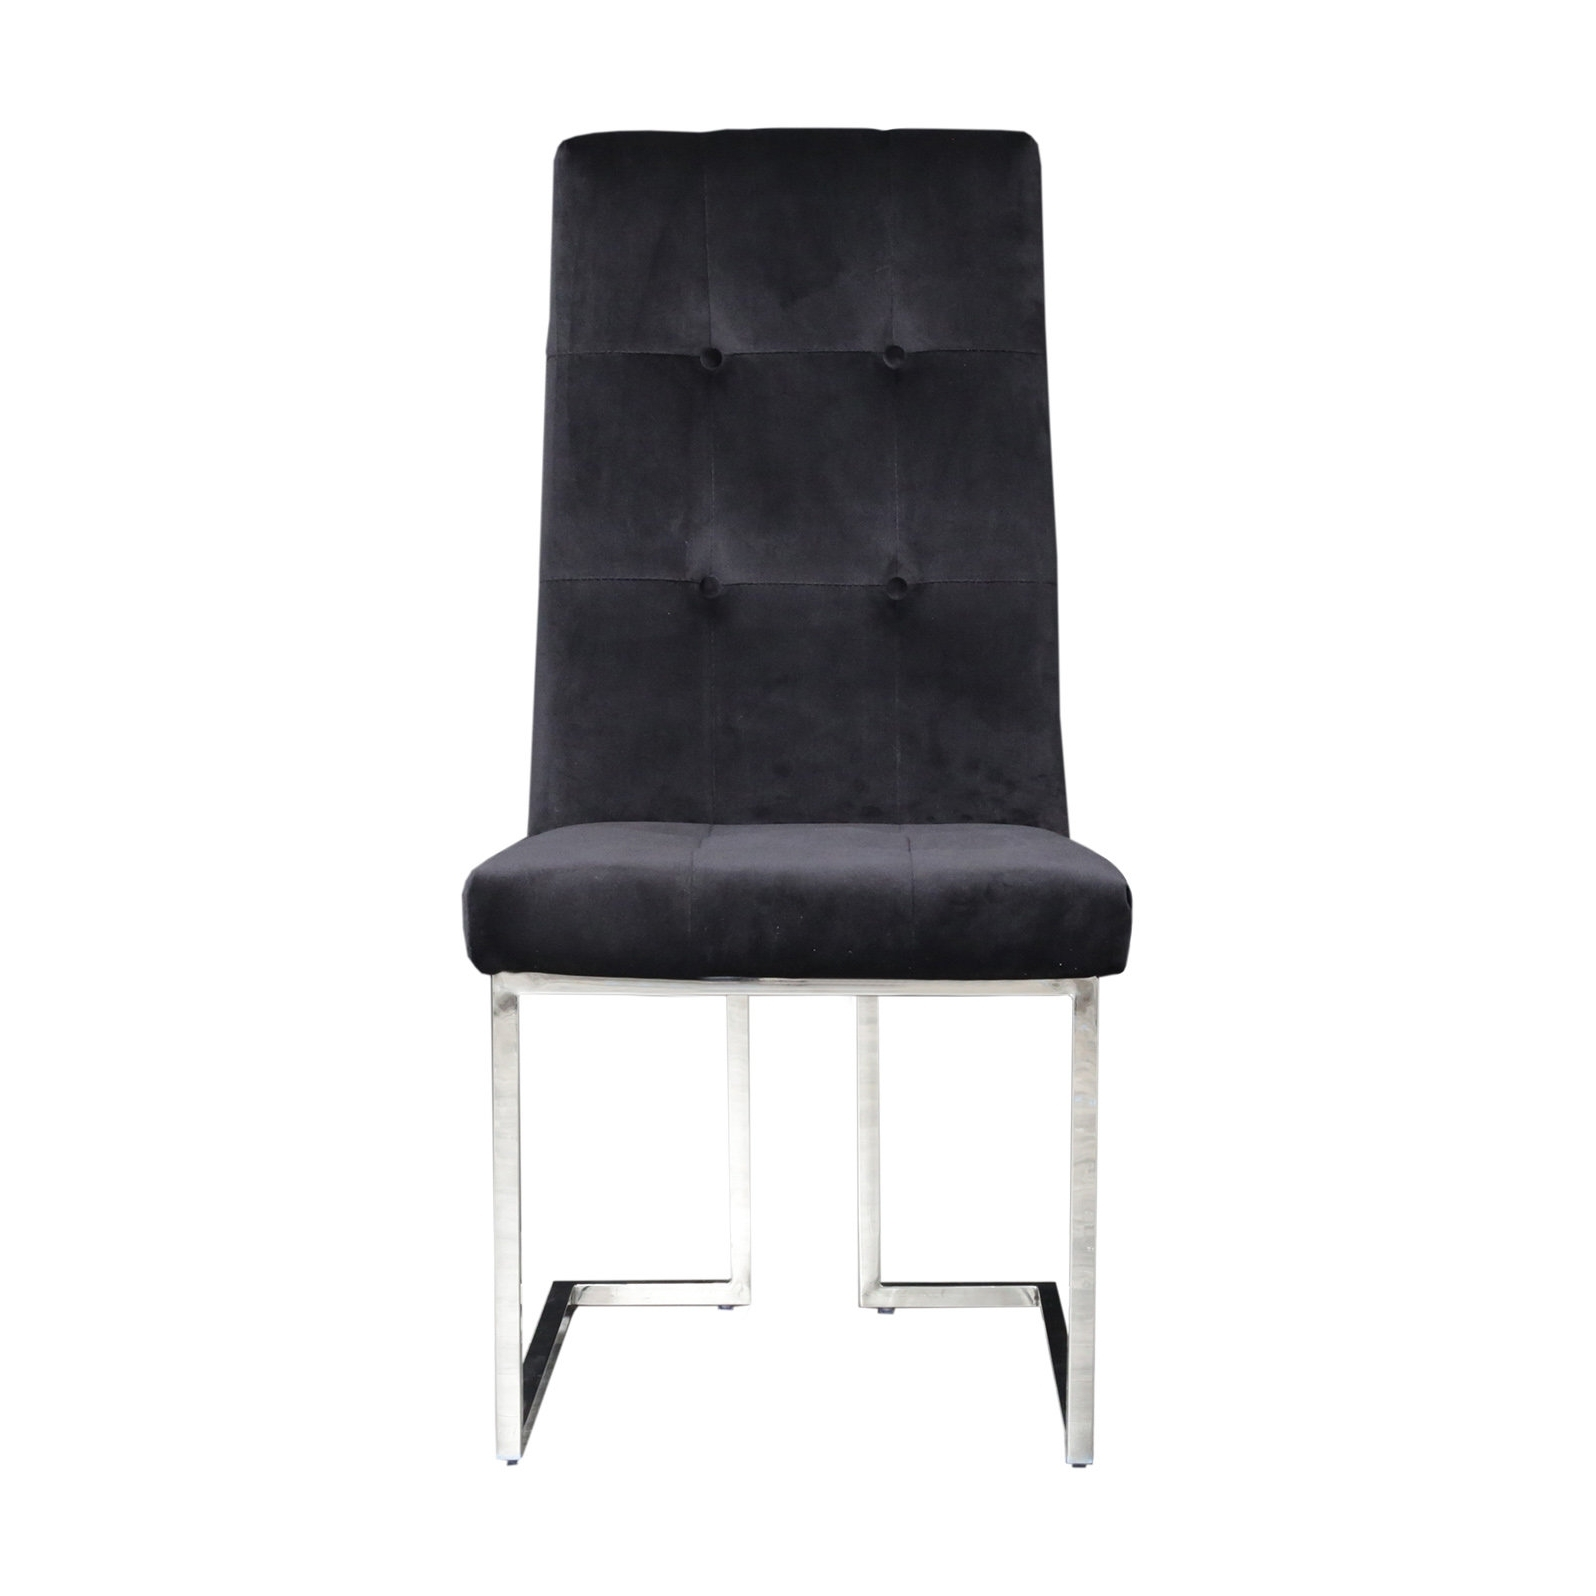 Caden Upholstered Side Chairs With Well Liked Mercer41 Jolley Upholstered Dining Chair (View 12 of 20)